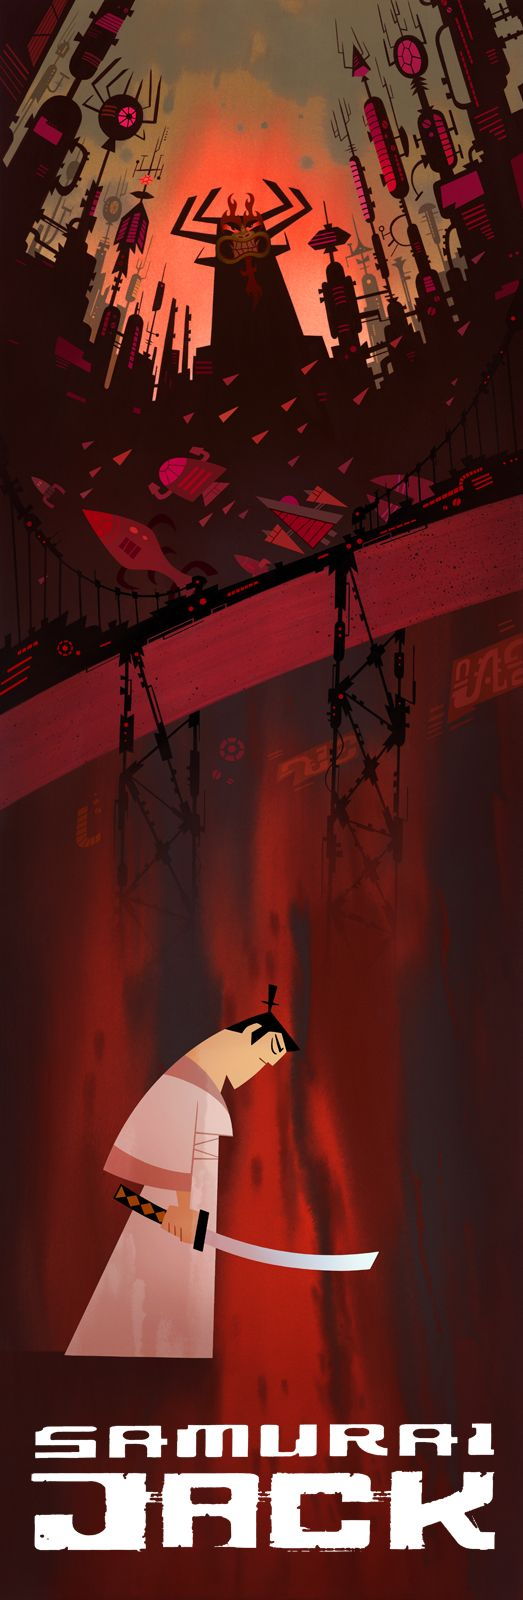 Samurai Jack - One of (if not the) best show Cartoon Network ever made!